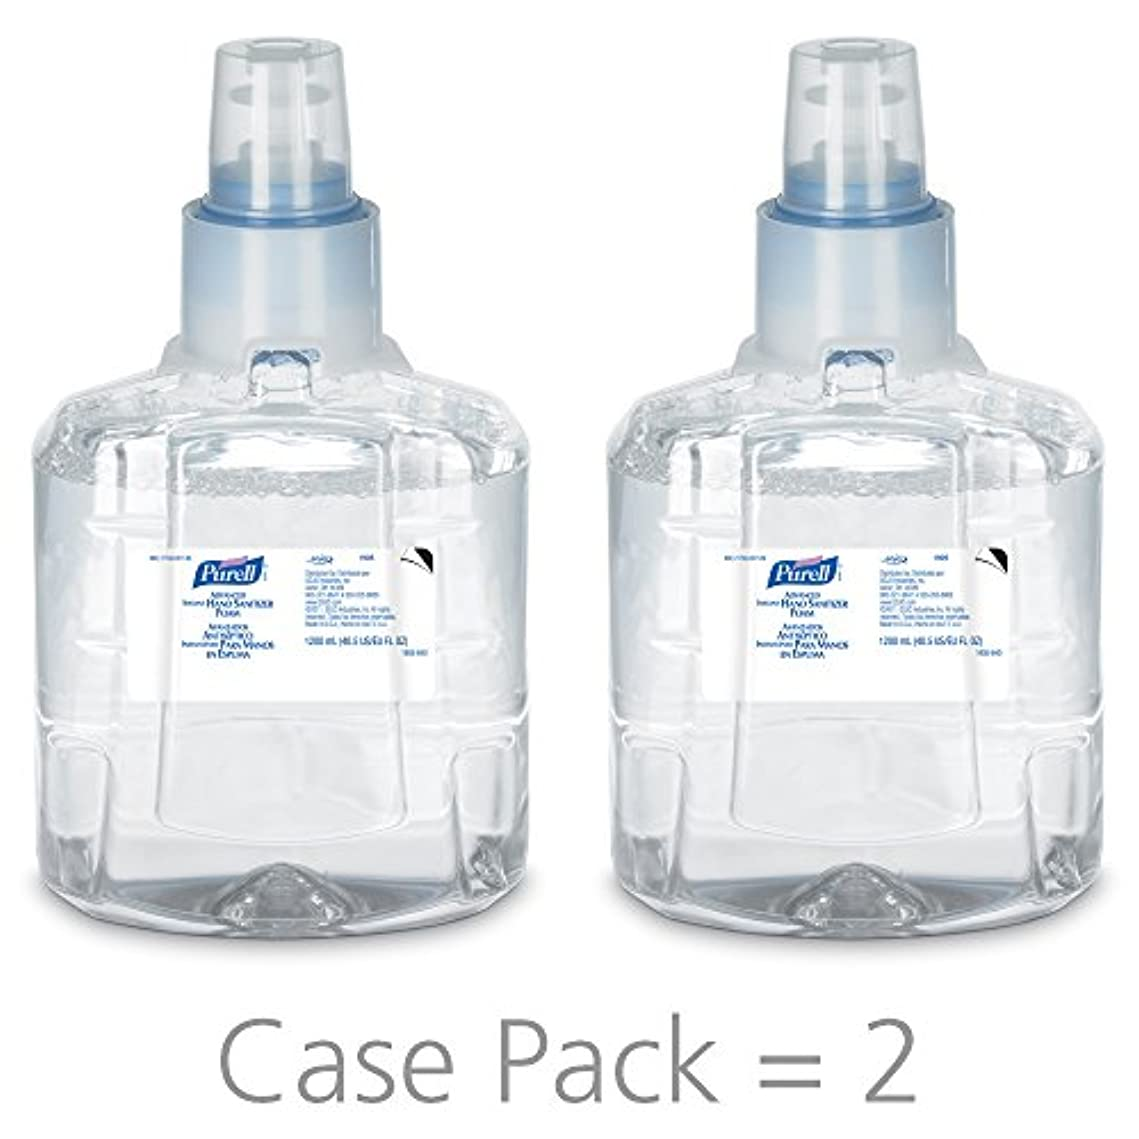 腐ったアコード正確さPURELL 1905-02 1200 mL Advanced Hand Sanitizer Foam, LTX-12 Refill (Pack of 2) by Purell